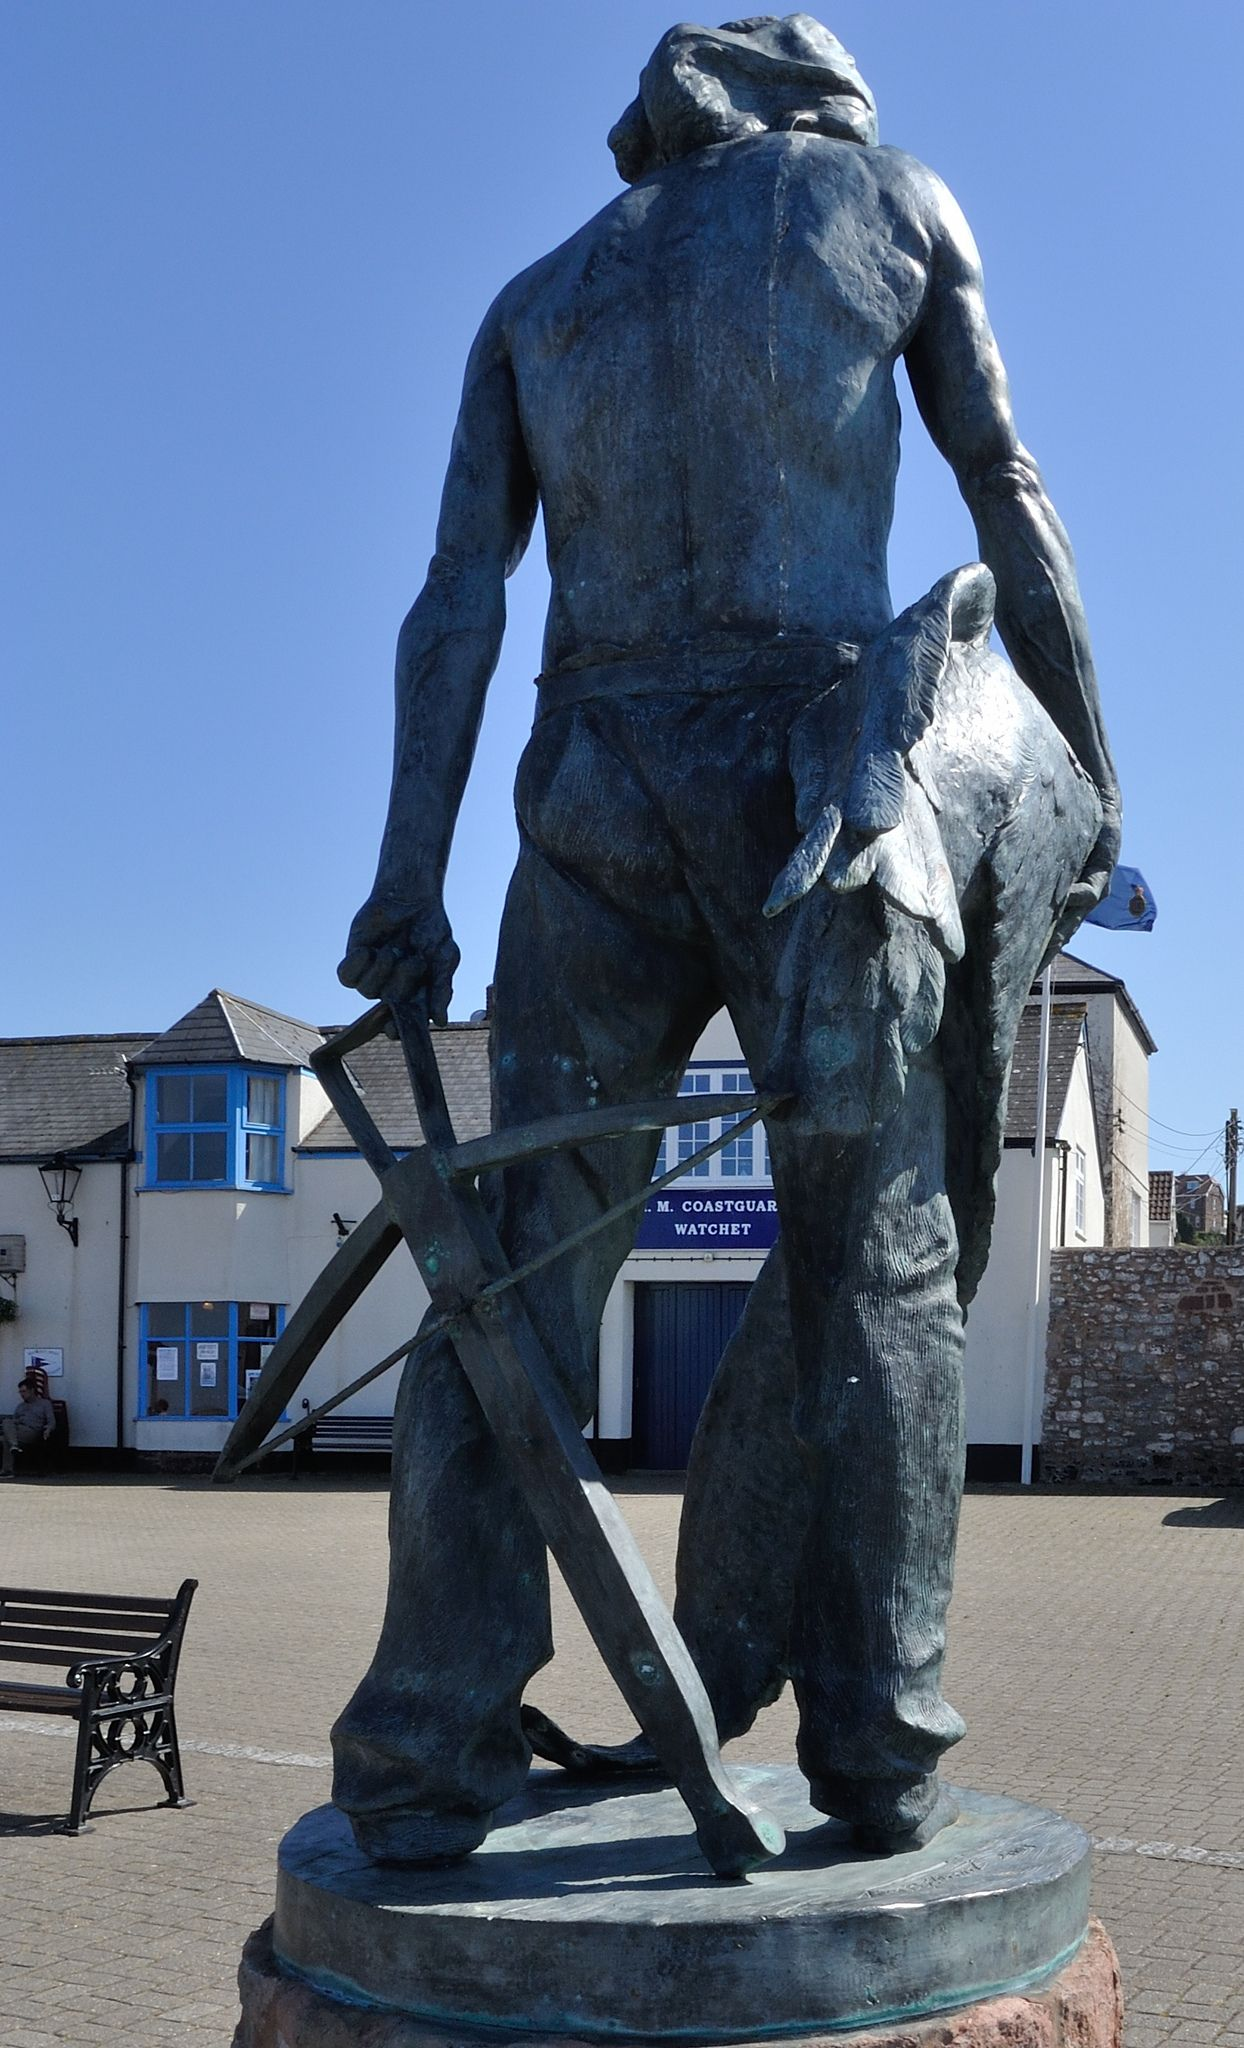 Statue of the ancient mariner with the albatross around his neck at statue of the ancient mariner with the albatross around his neck at watchet harbour in england biocorpaavc Images